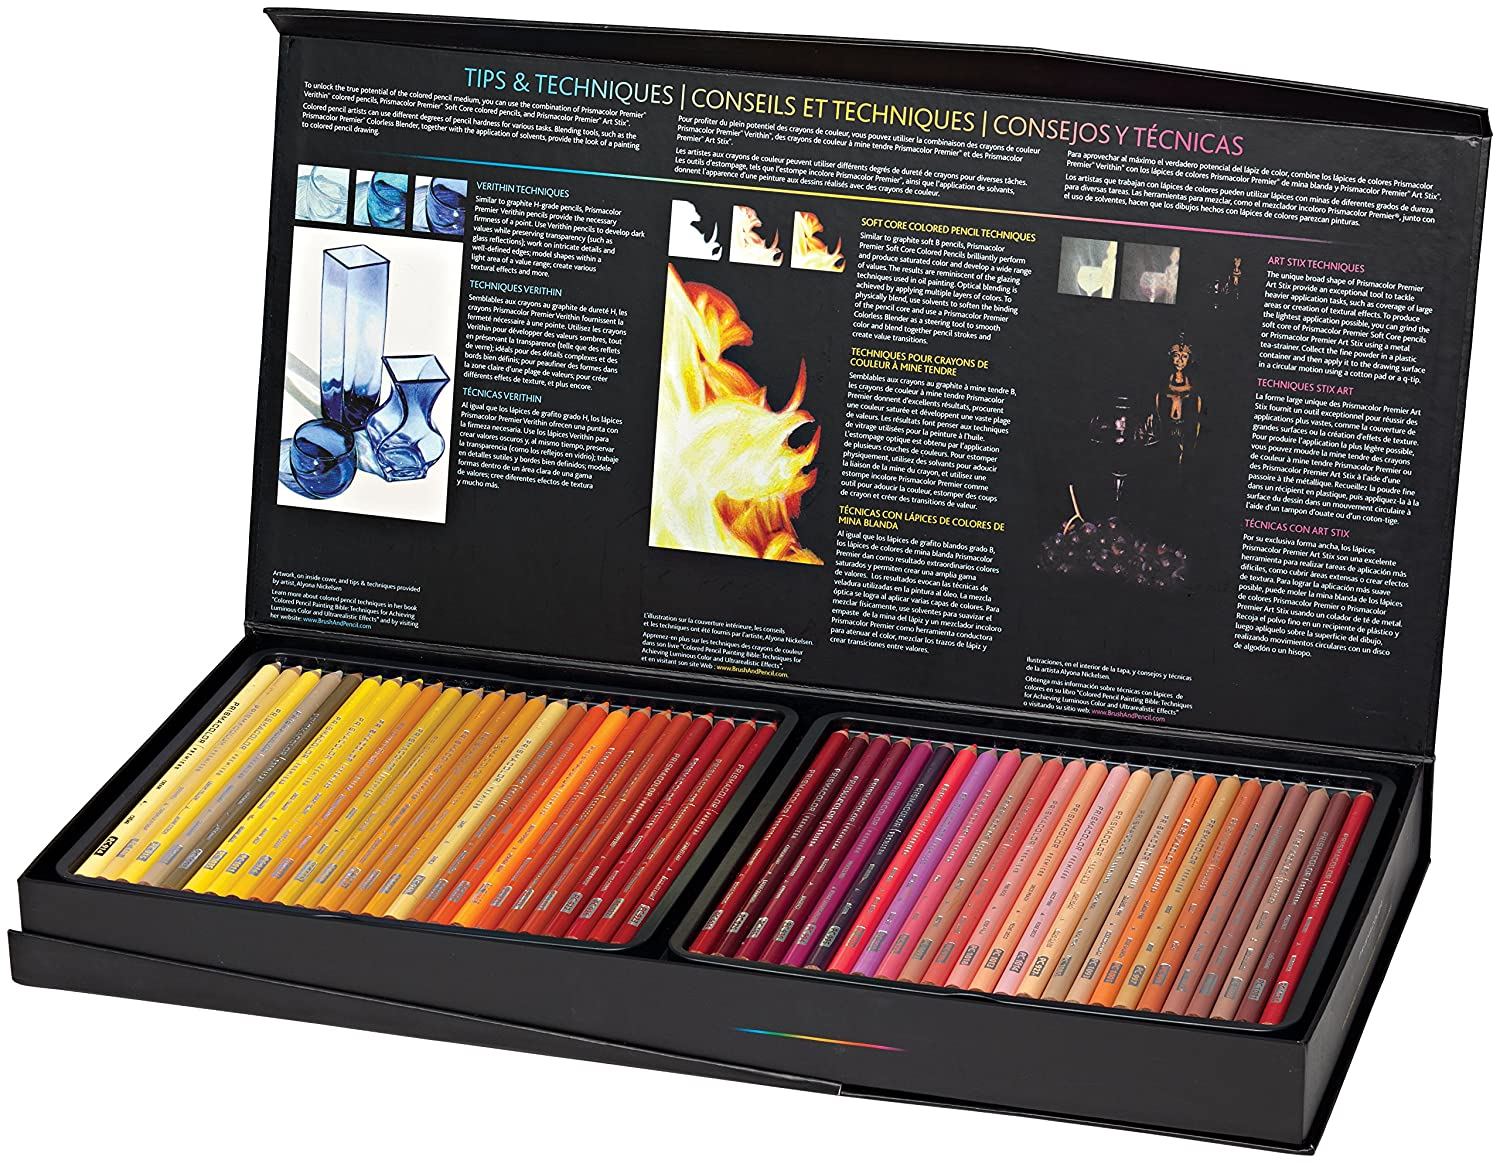 Art colored pencils - Amazon Com Prismacolor Premier Colored Pencils Soft Core 150 Count Wood Colored Pencils Office Products